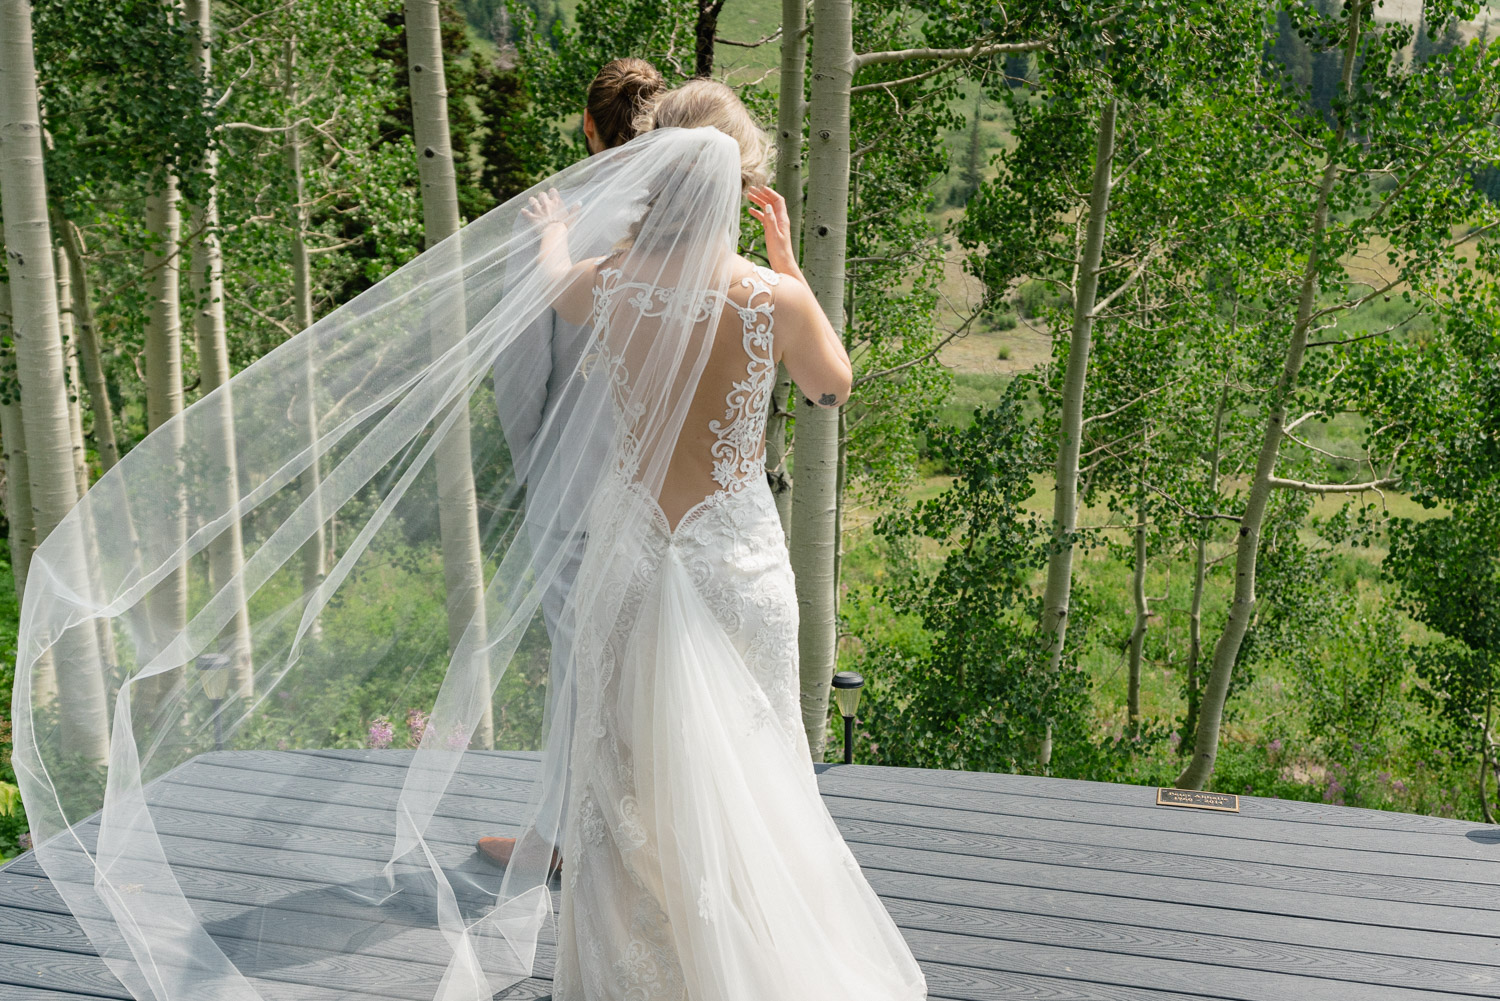 brides train blowing in wind and groom standing out by trees